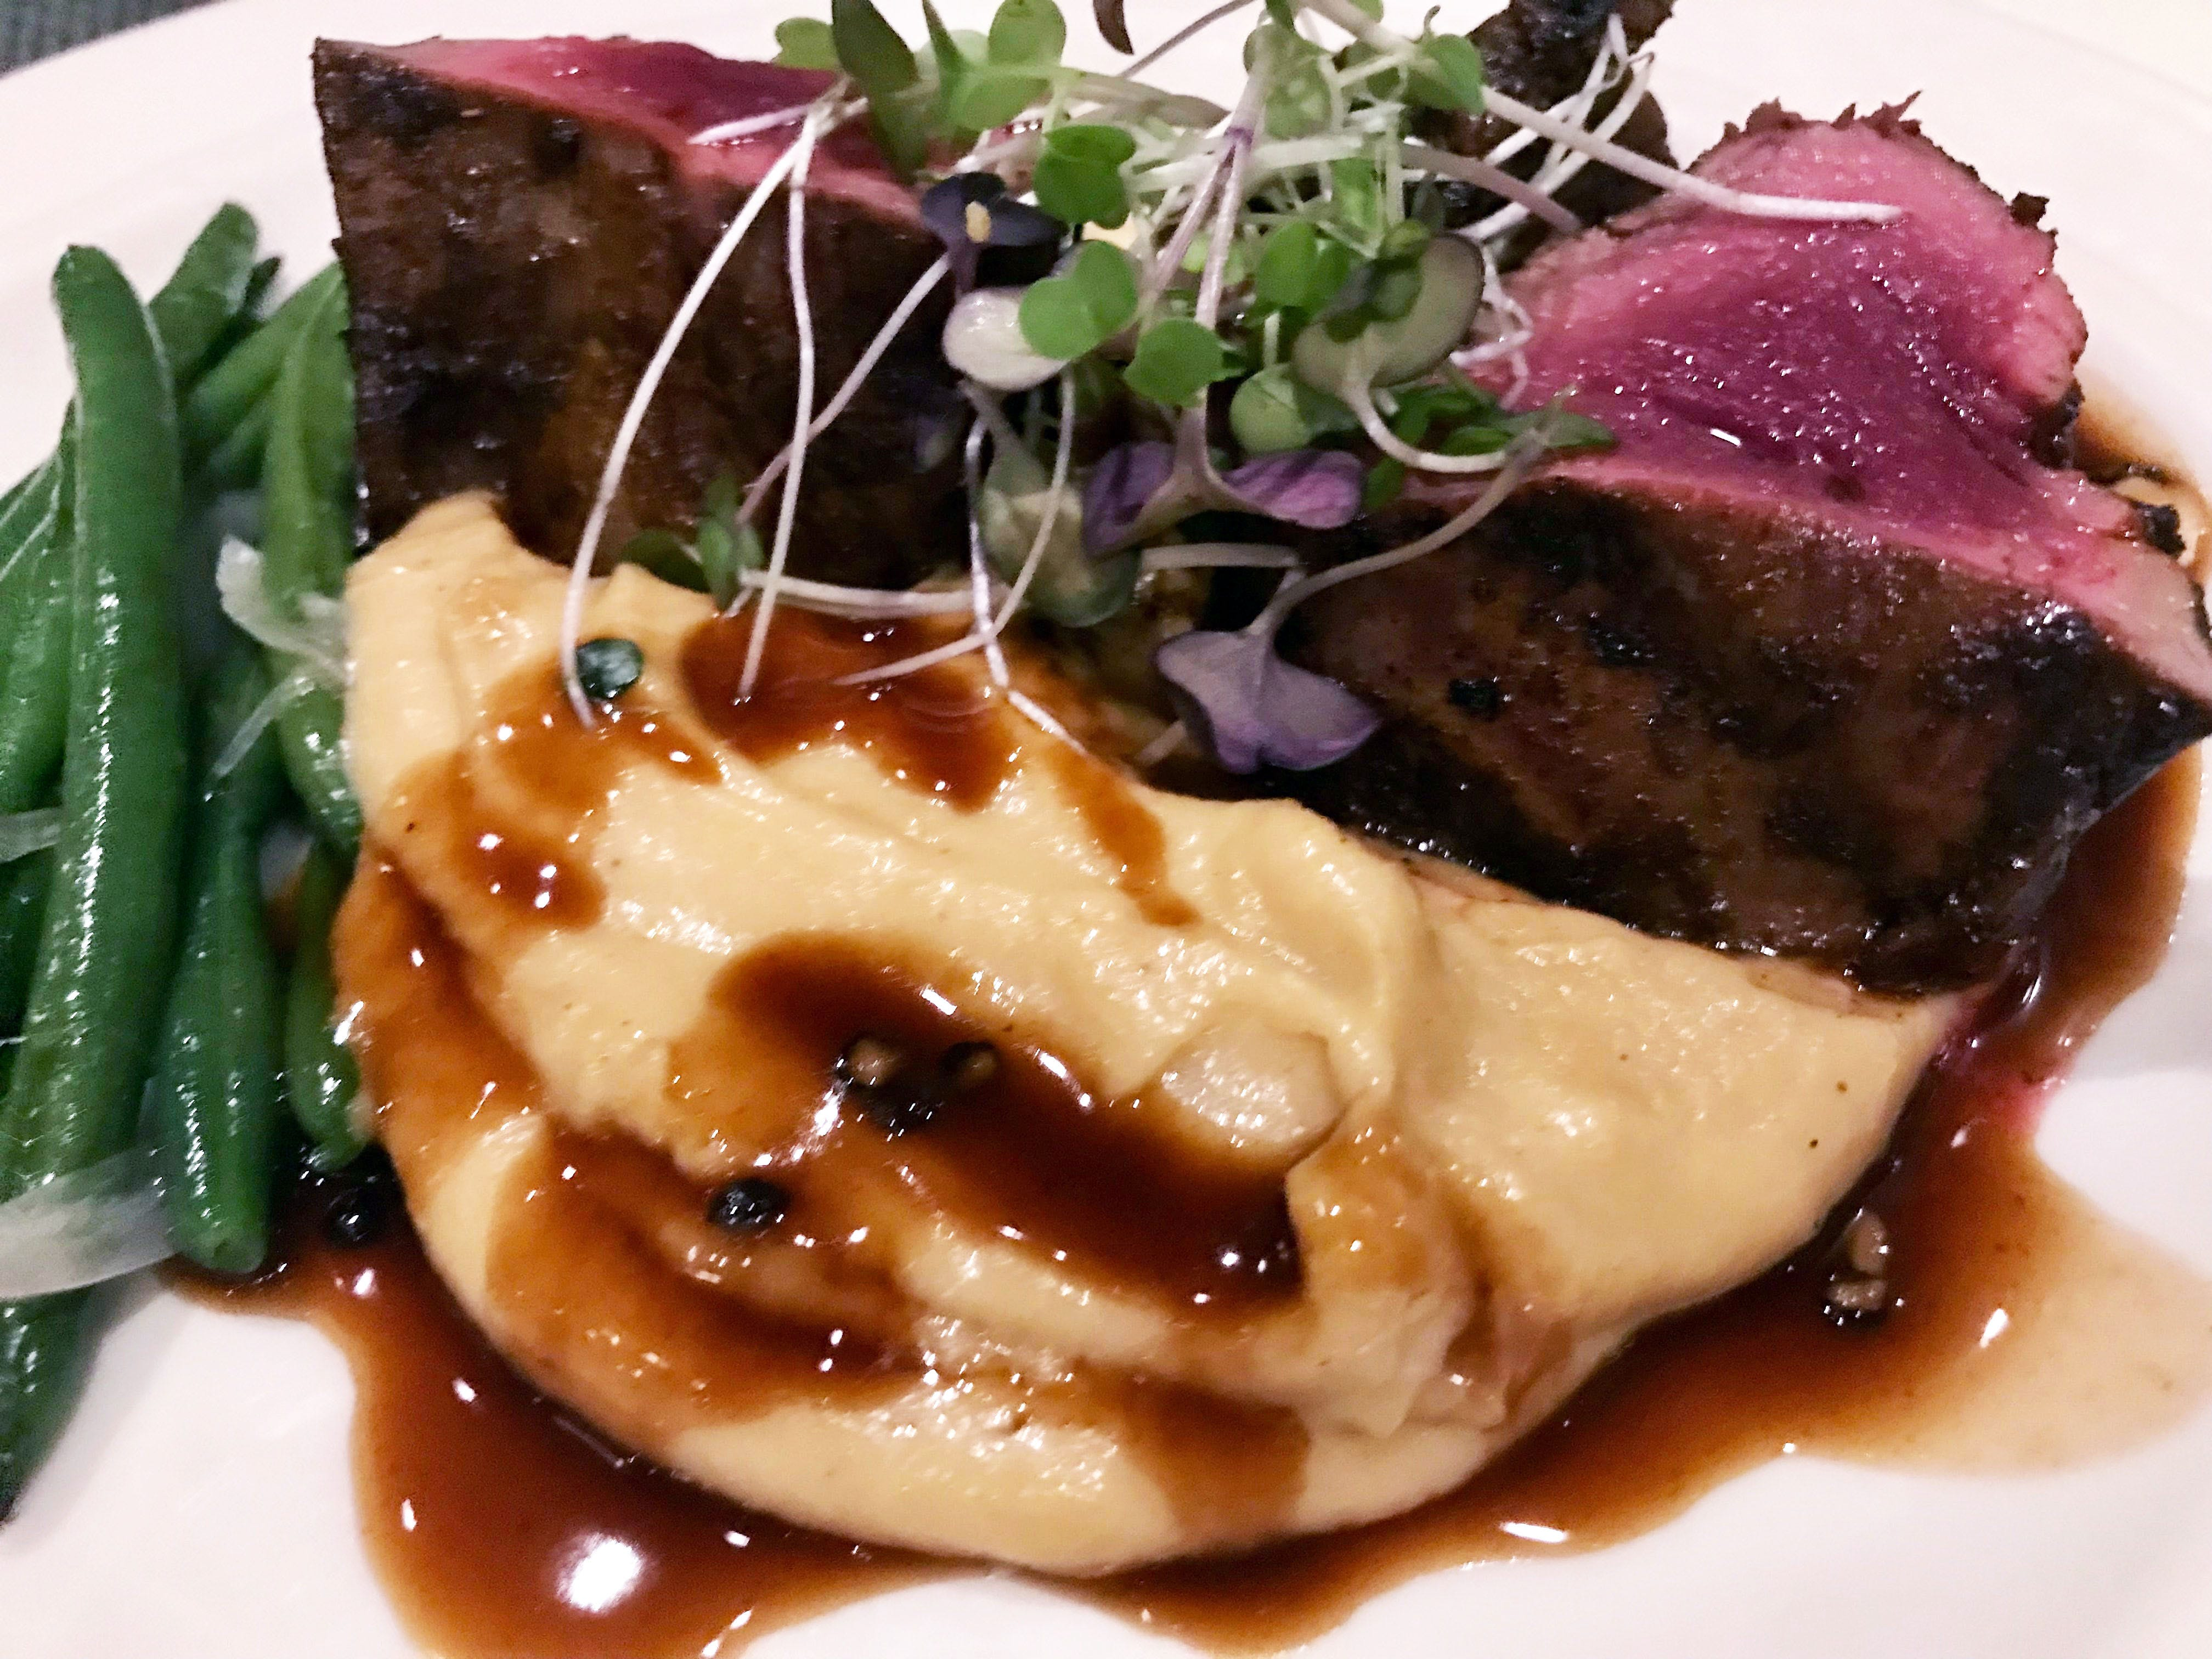 The Union House in Genesee Depot often has game on the menu, such as this venison with parsnip puree.